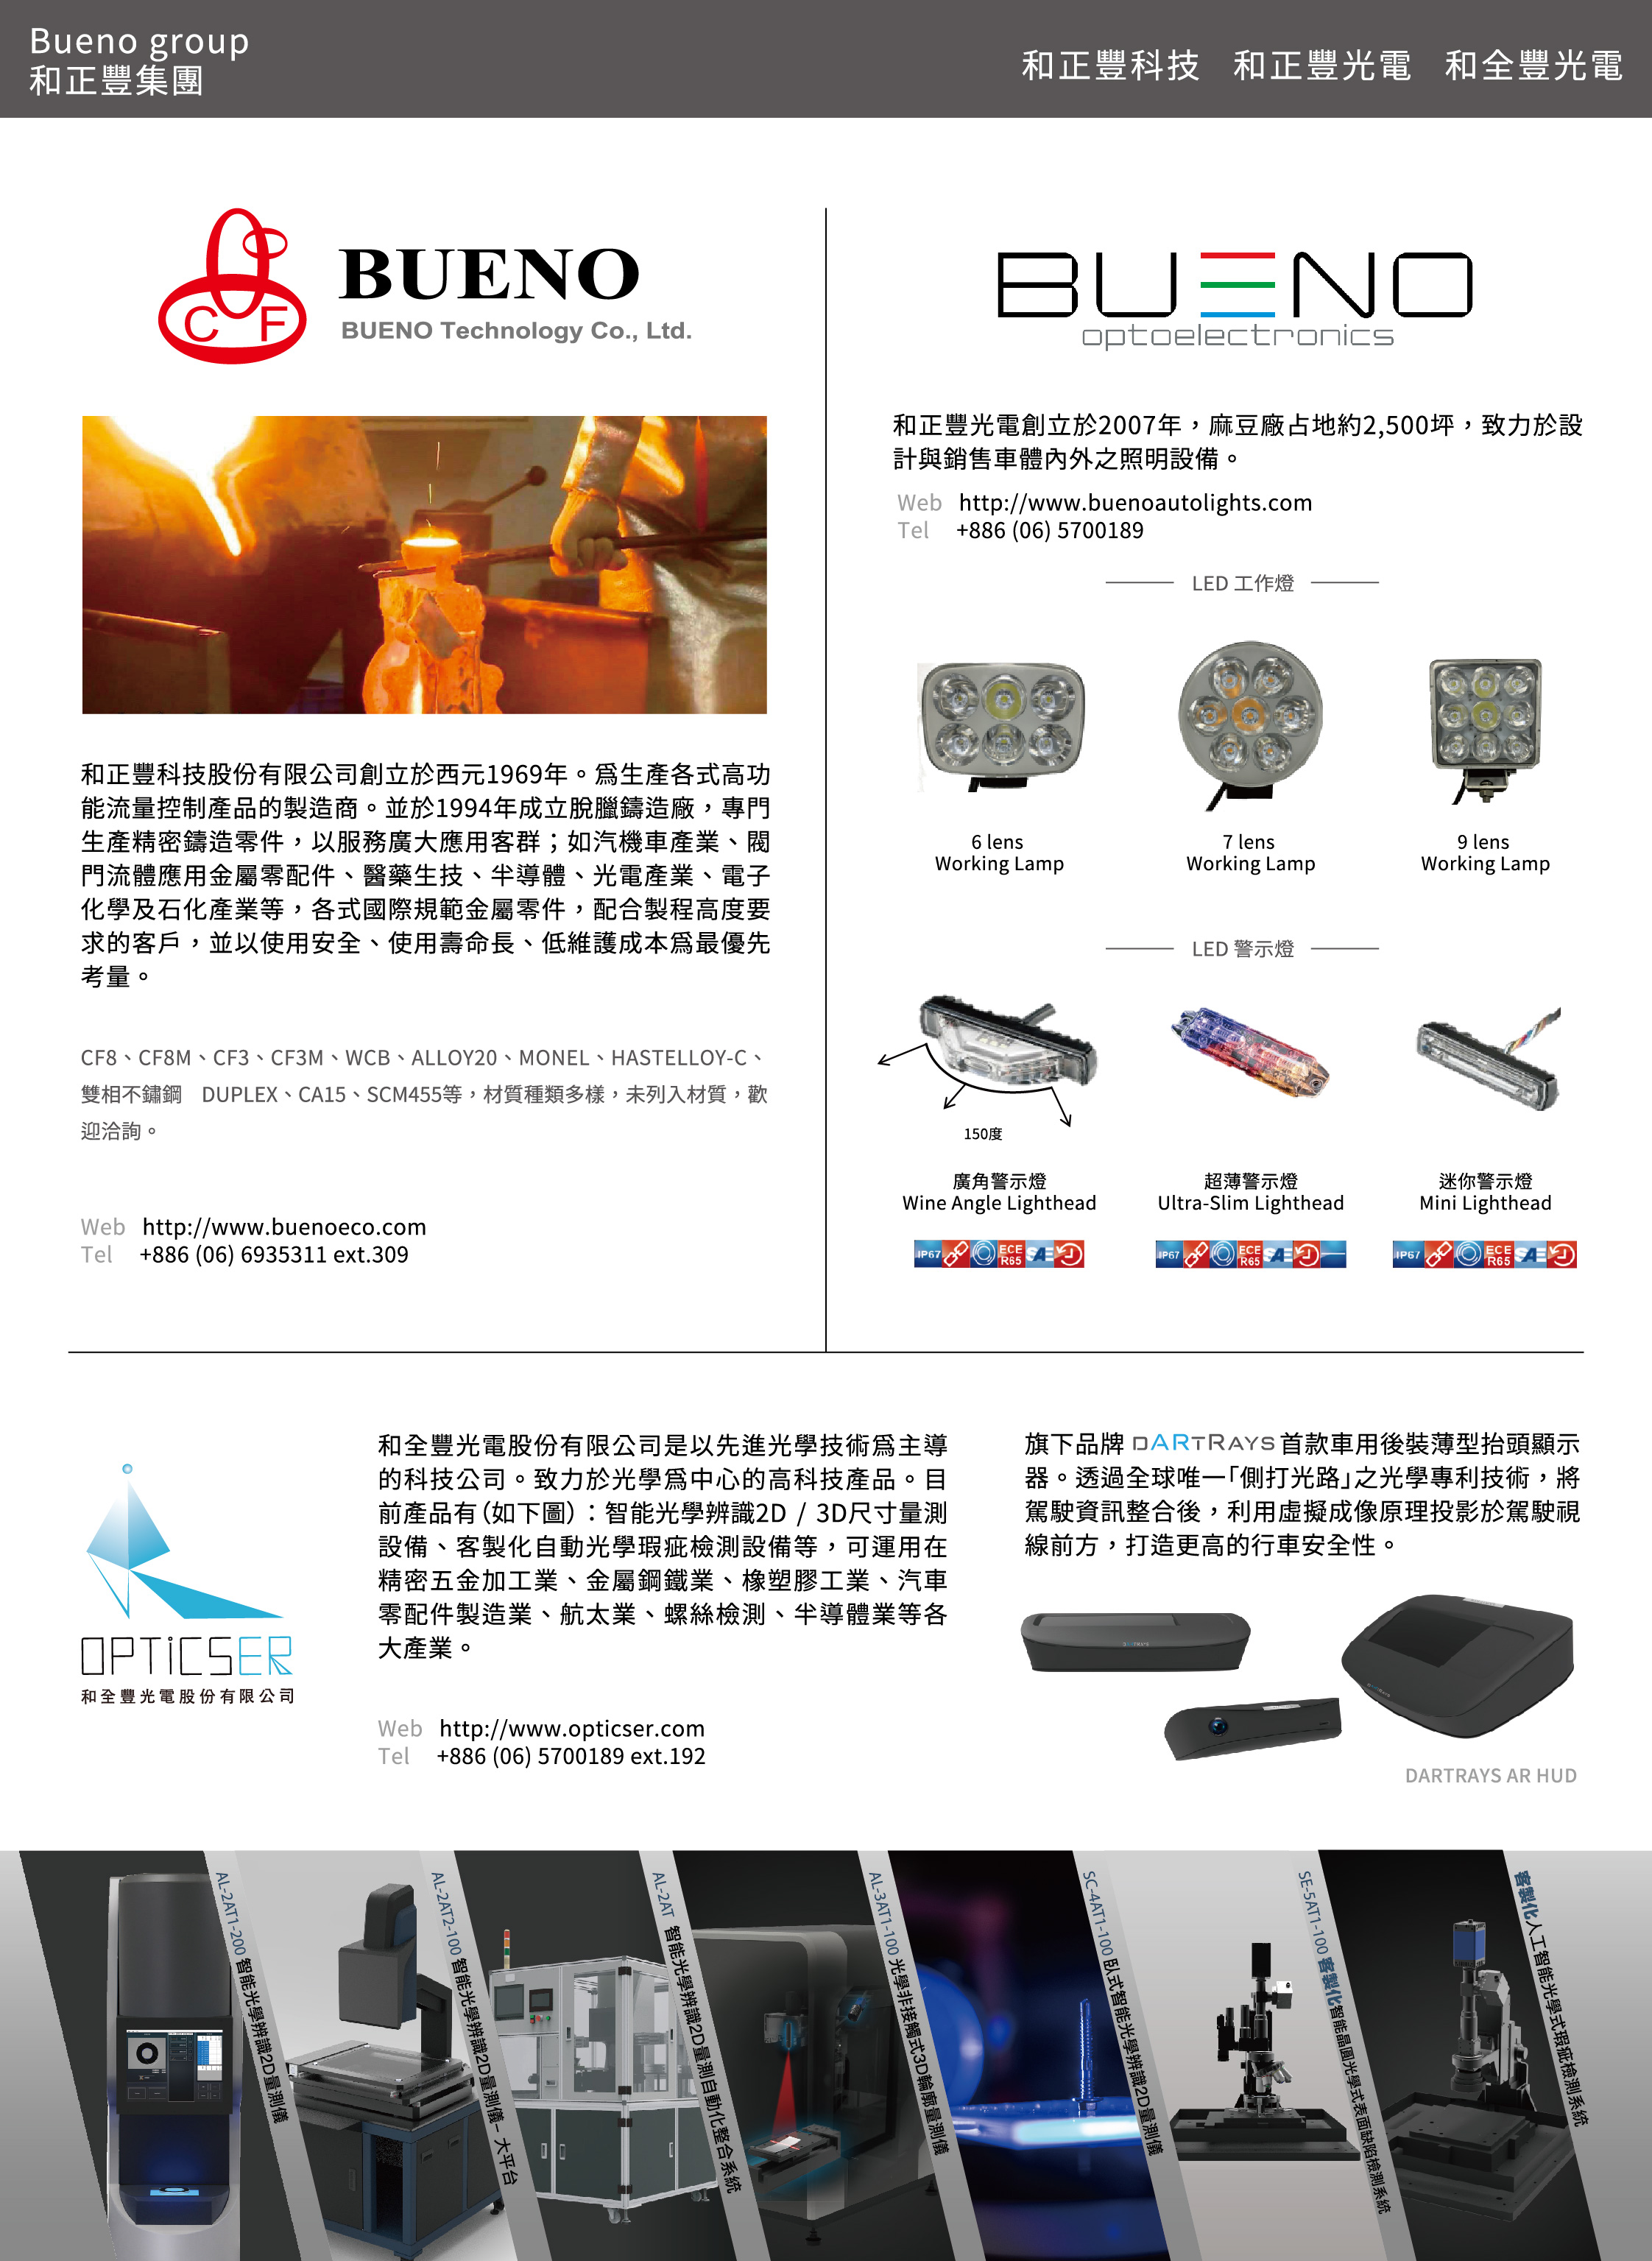 BUENO TECHNOLOGY CO., LTD